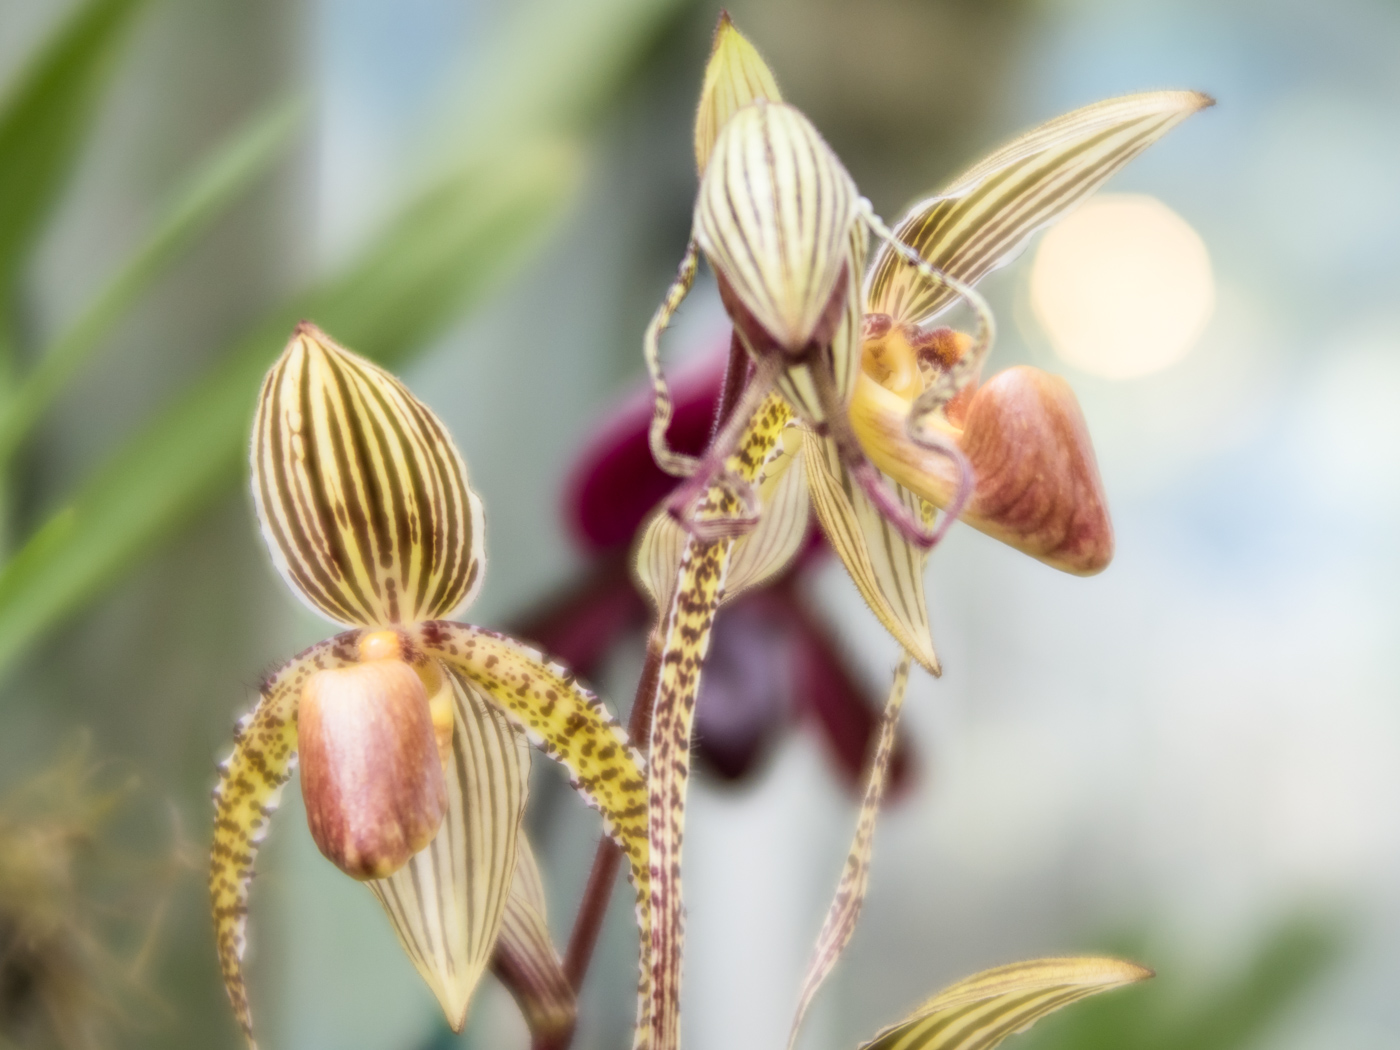 Soft backlight gives such a wonderful glow to these orchids.